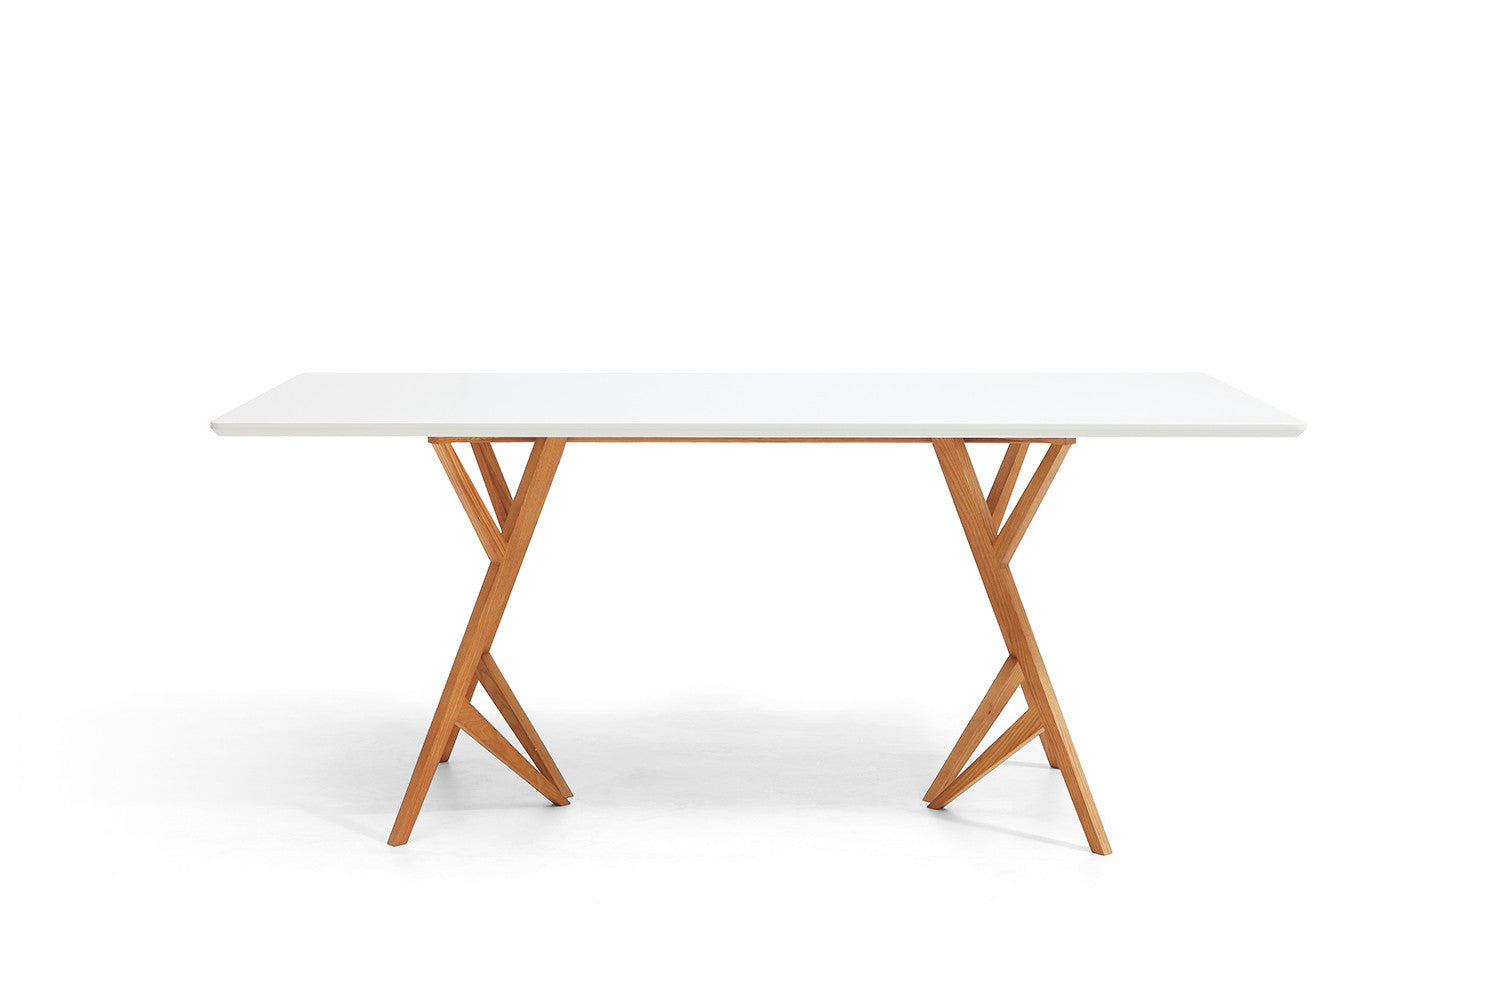 Table de salle manger design scandinave vispa dewarens - Table blanche de cuisine ...